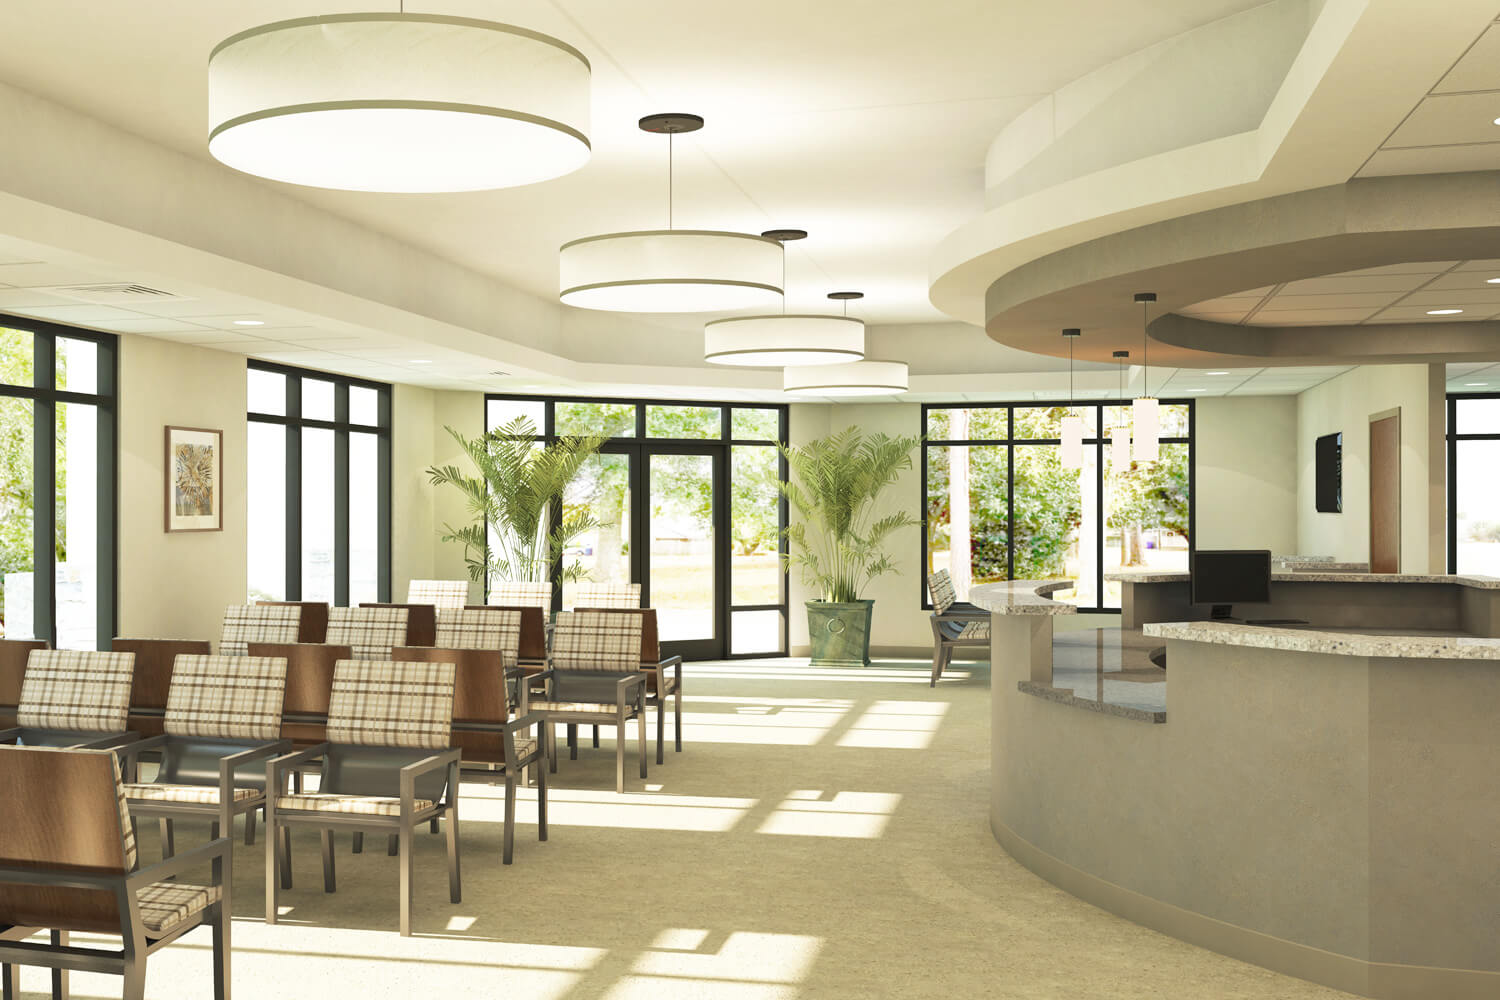 Troy Family Medicine Clinic Designed by Foshee Architecture - Artist Depiction and Rendering of the Interior